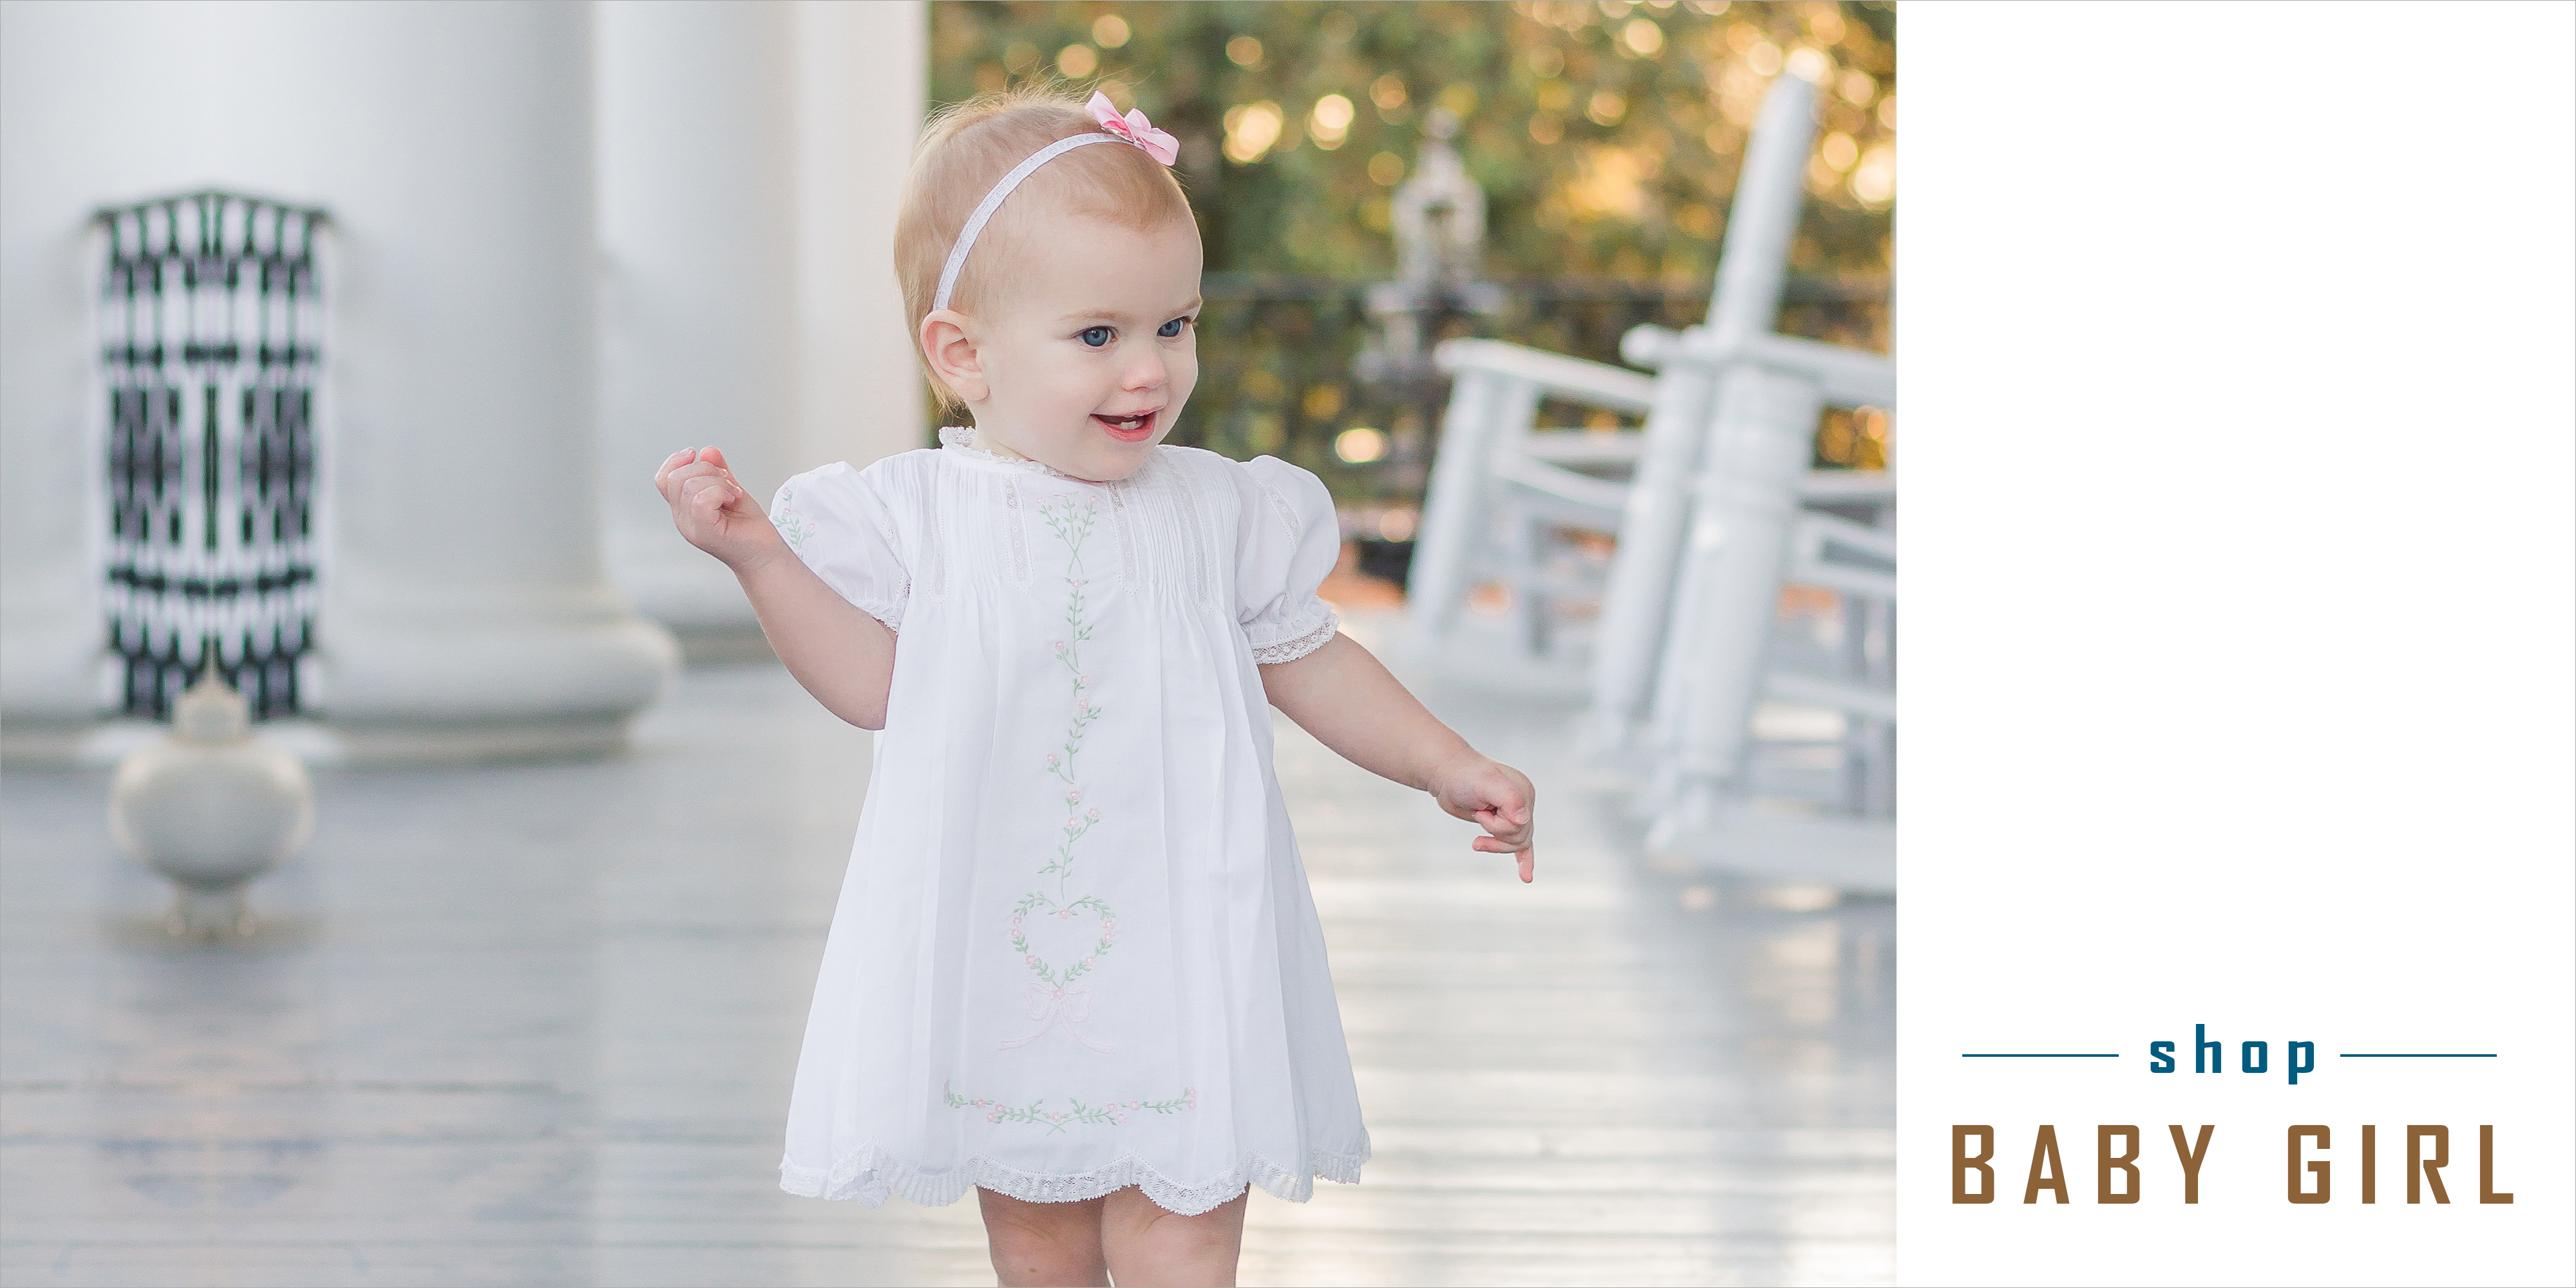 baby-girl-home-page17.jpg